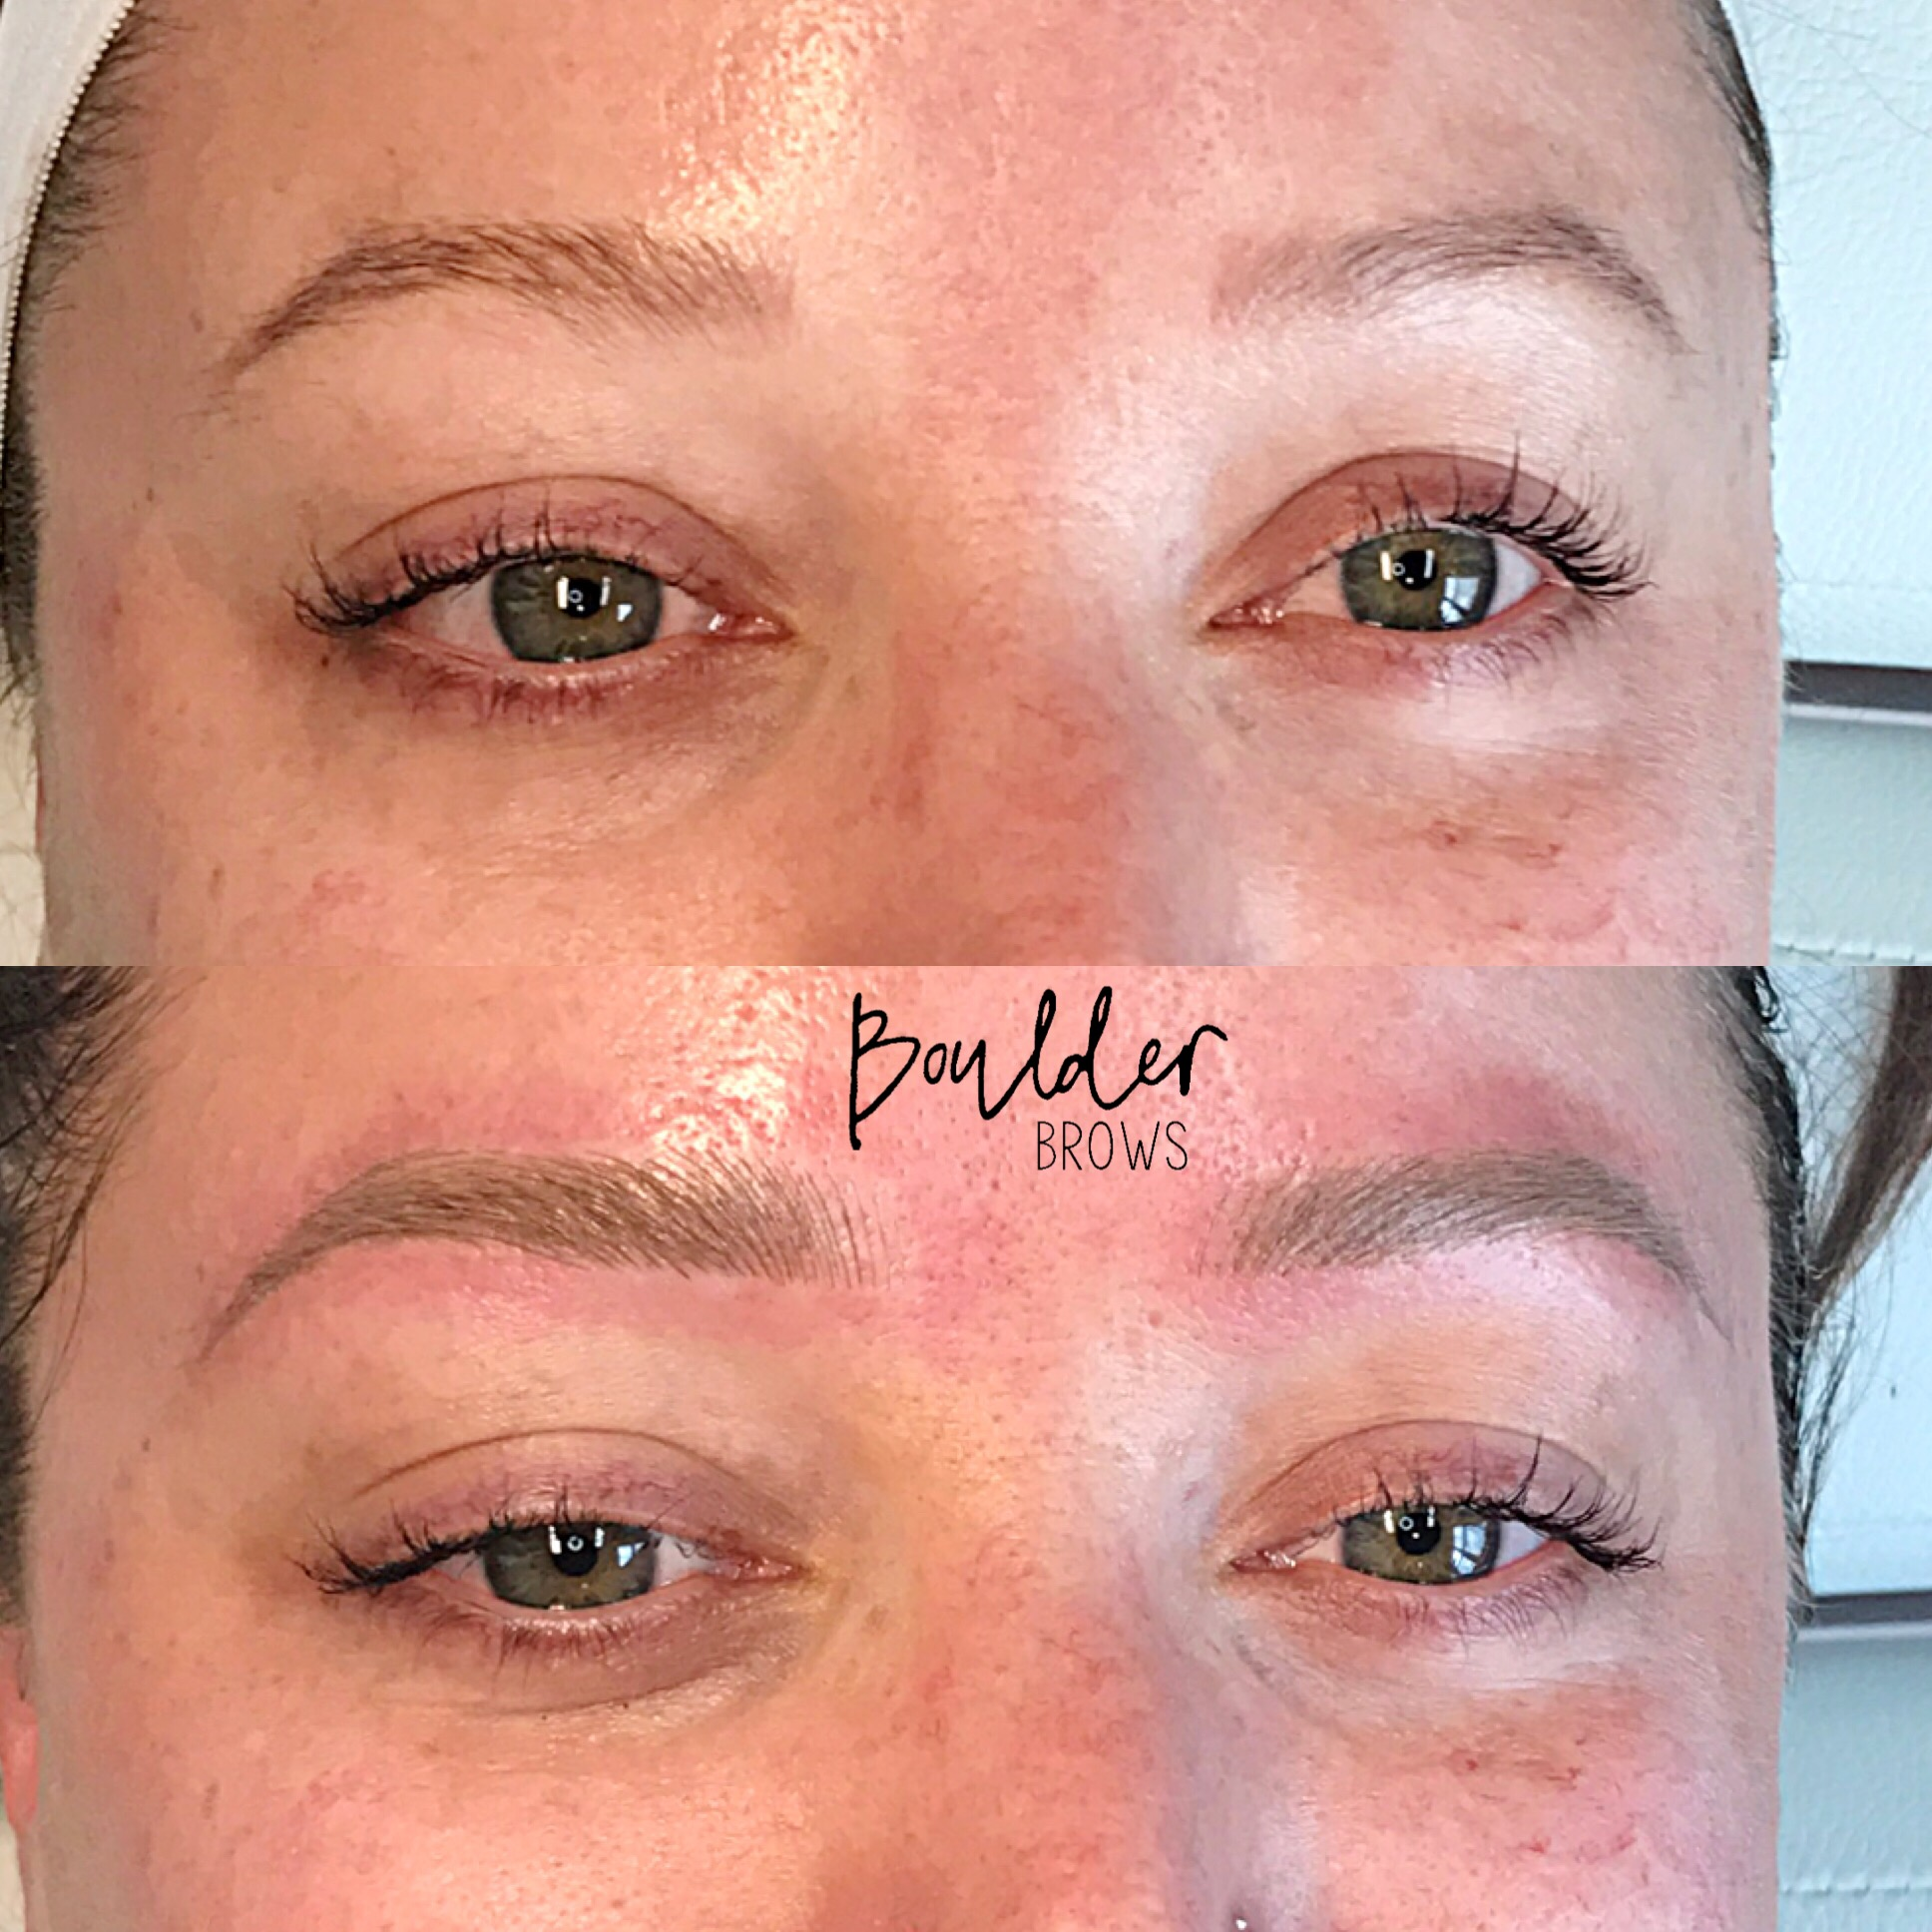 1ST MICROBLADING SESSION/CORRECTION  Top: Before + Faded Pre-Existing Tattoo | Bottom: After